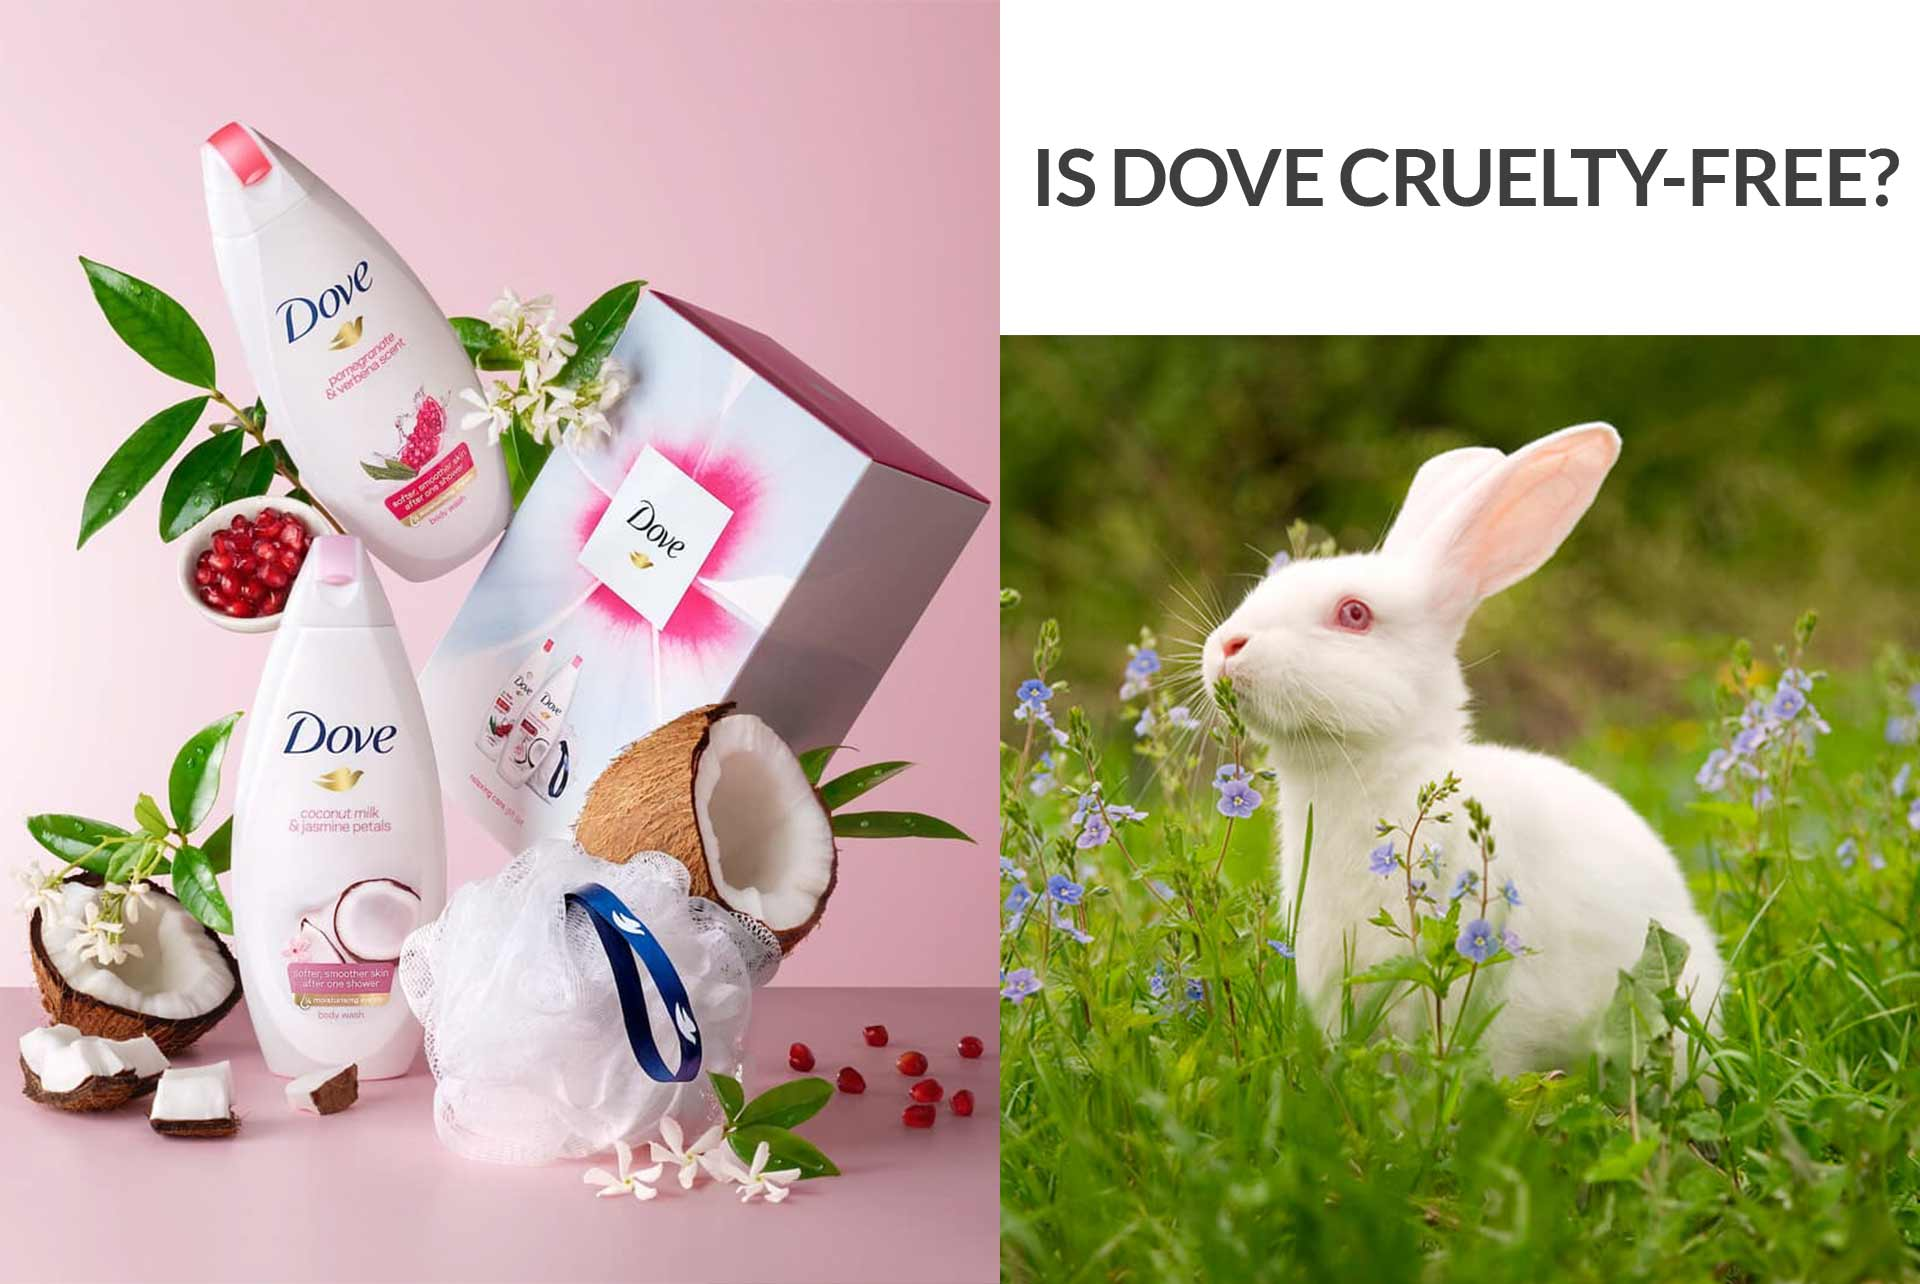 Is Dove Cruelty-Free?